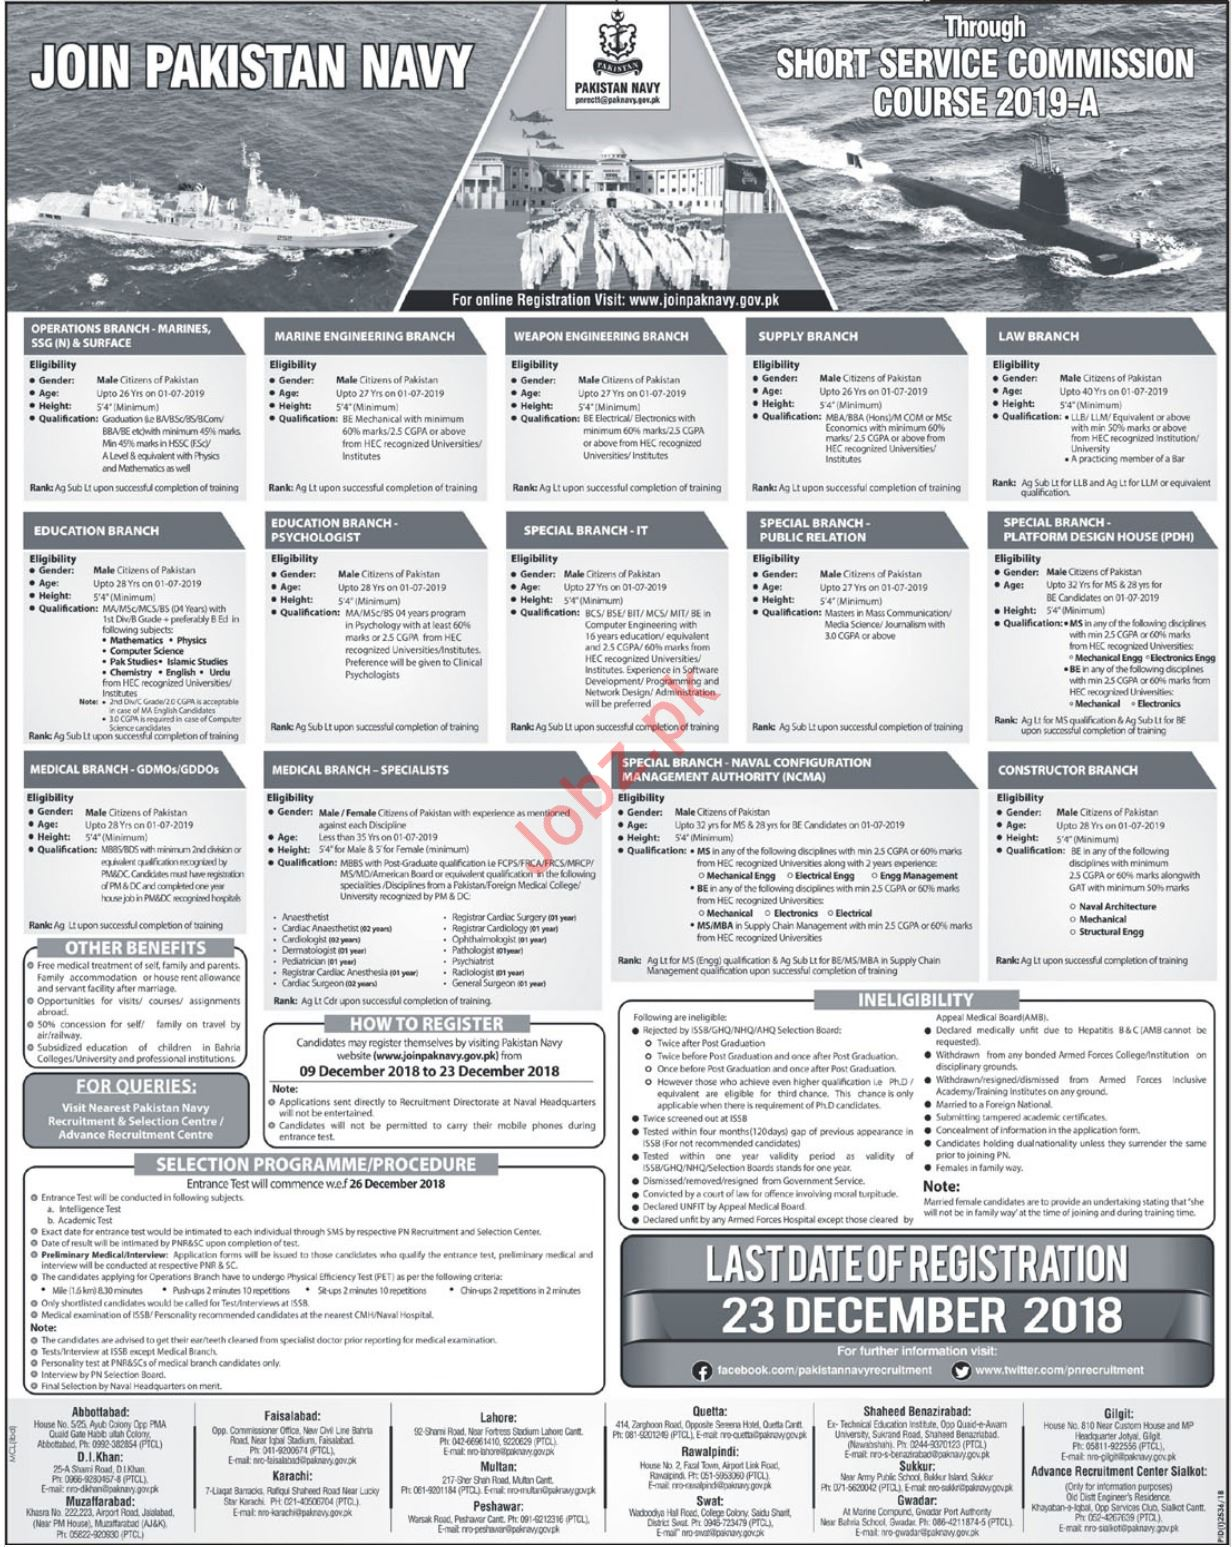 Join Pak Navy Through Short Service Commission Course 2019-A